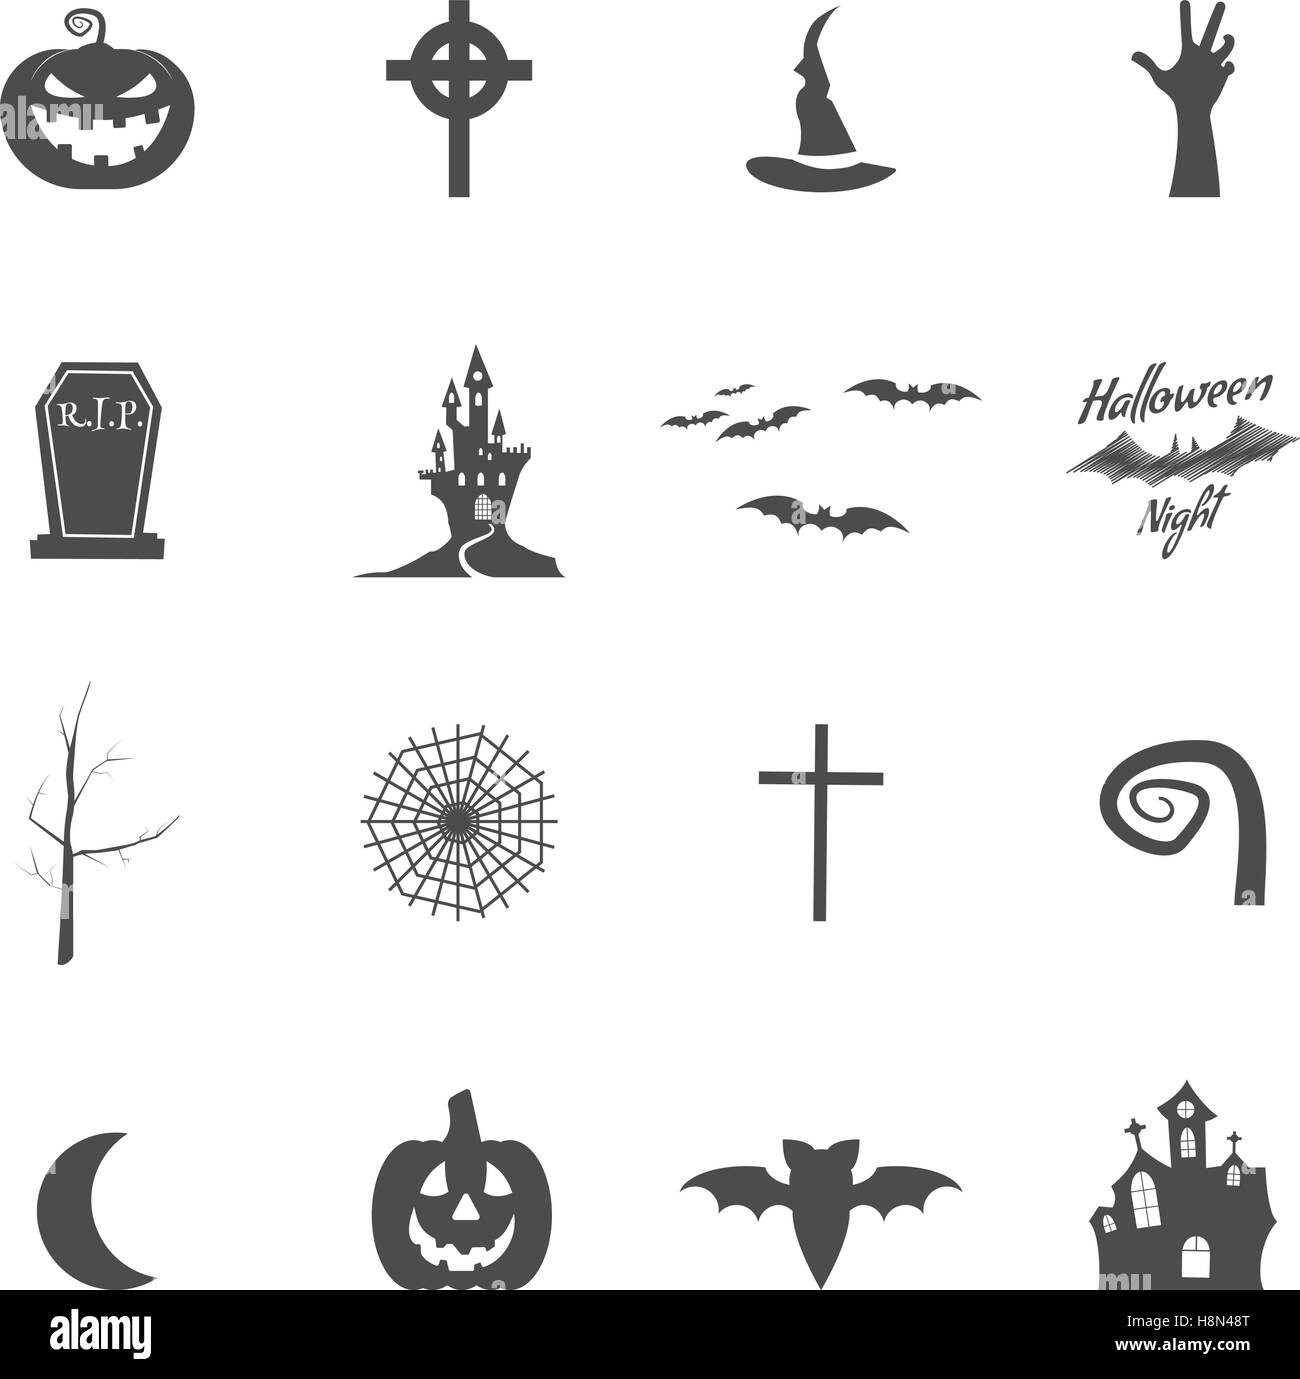 Set Of Halloween Design Creation Tool Kit Icons Isolate Silhouette